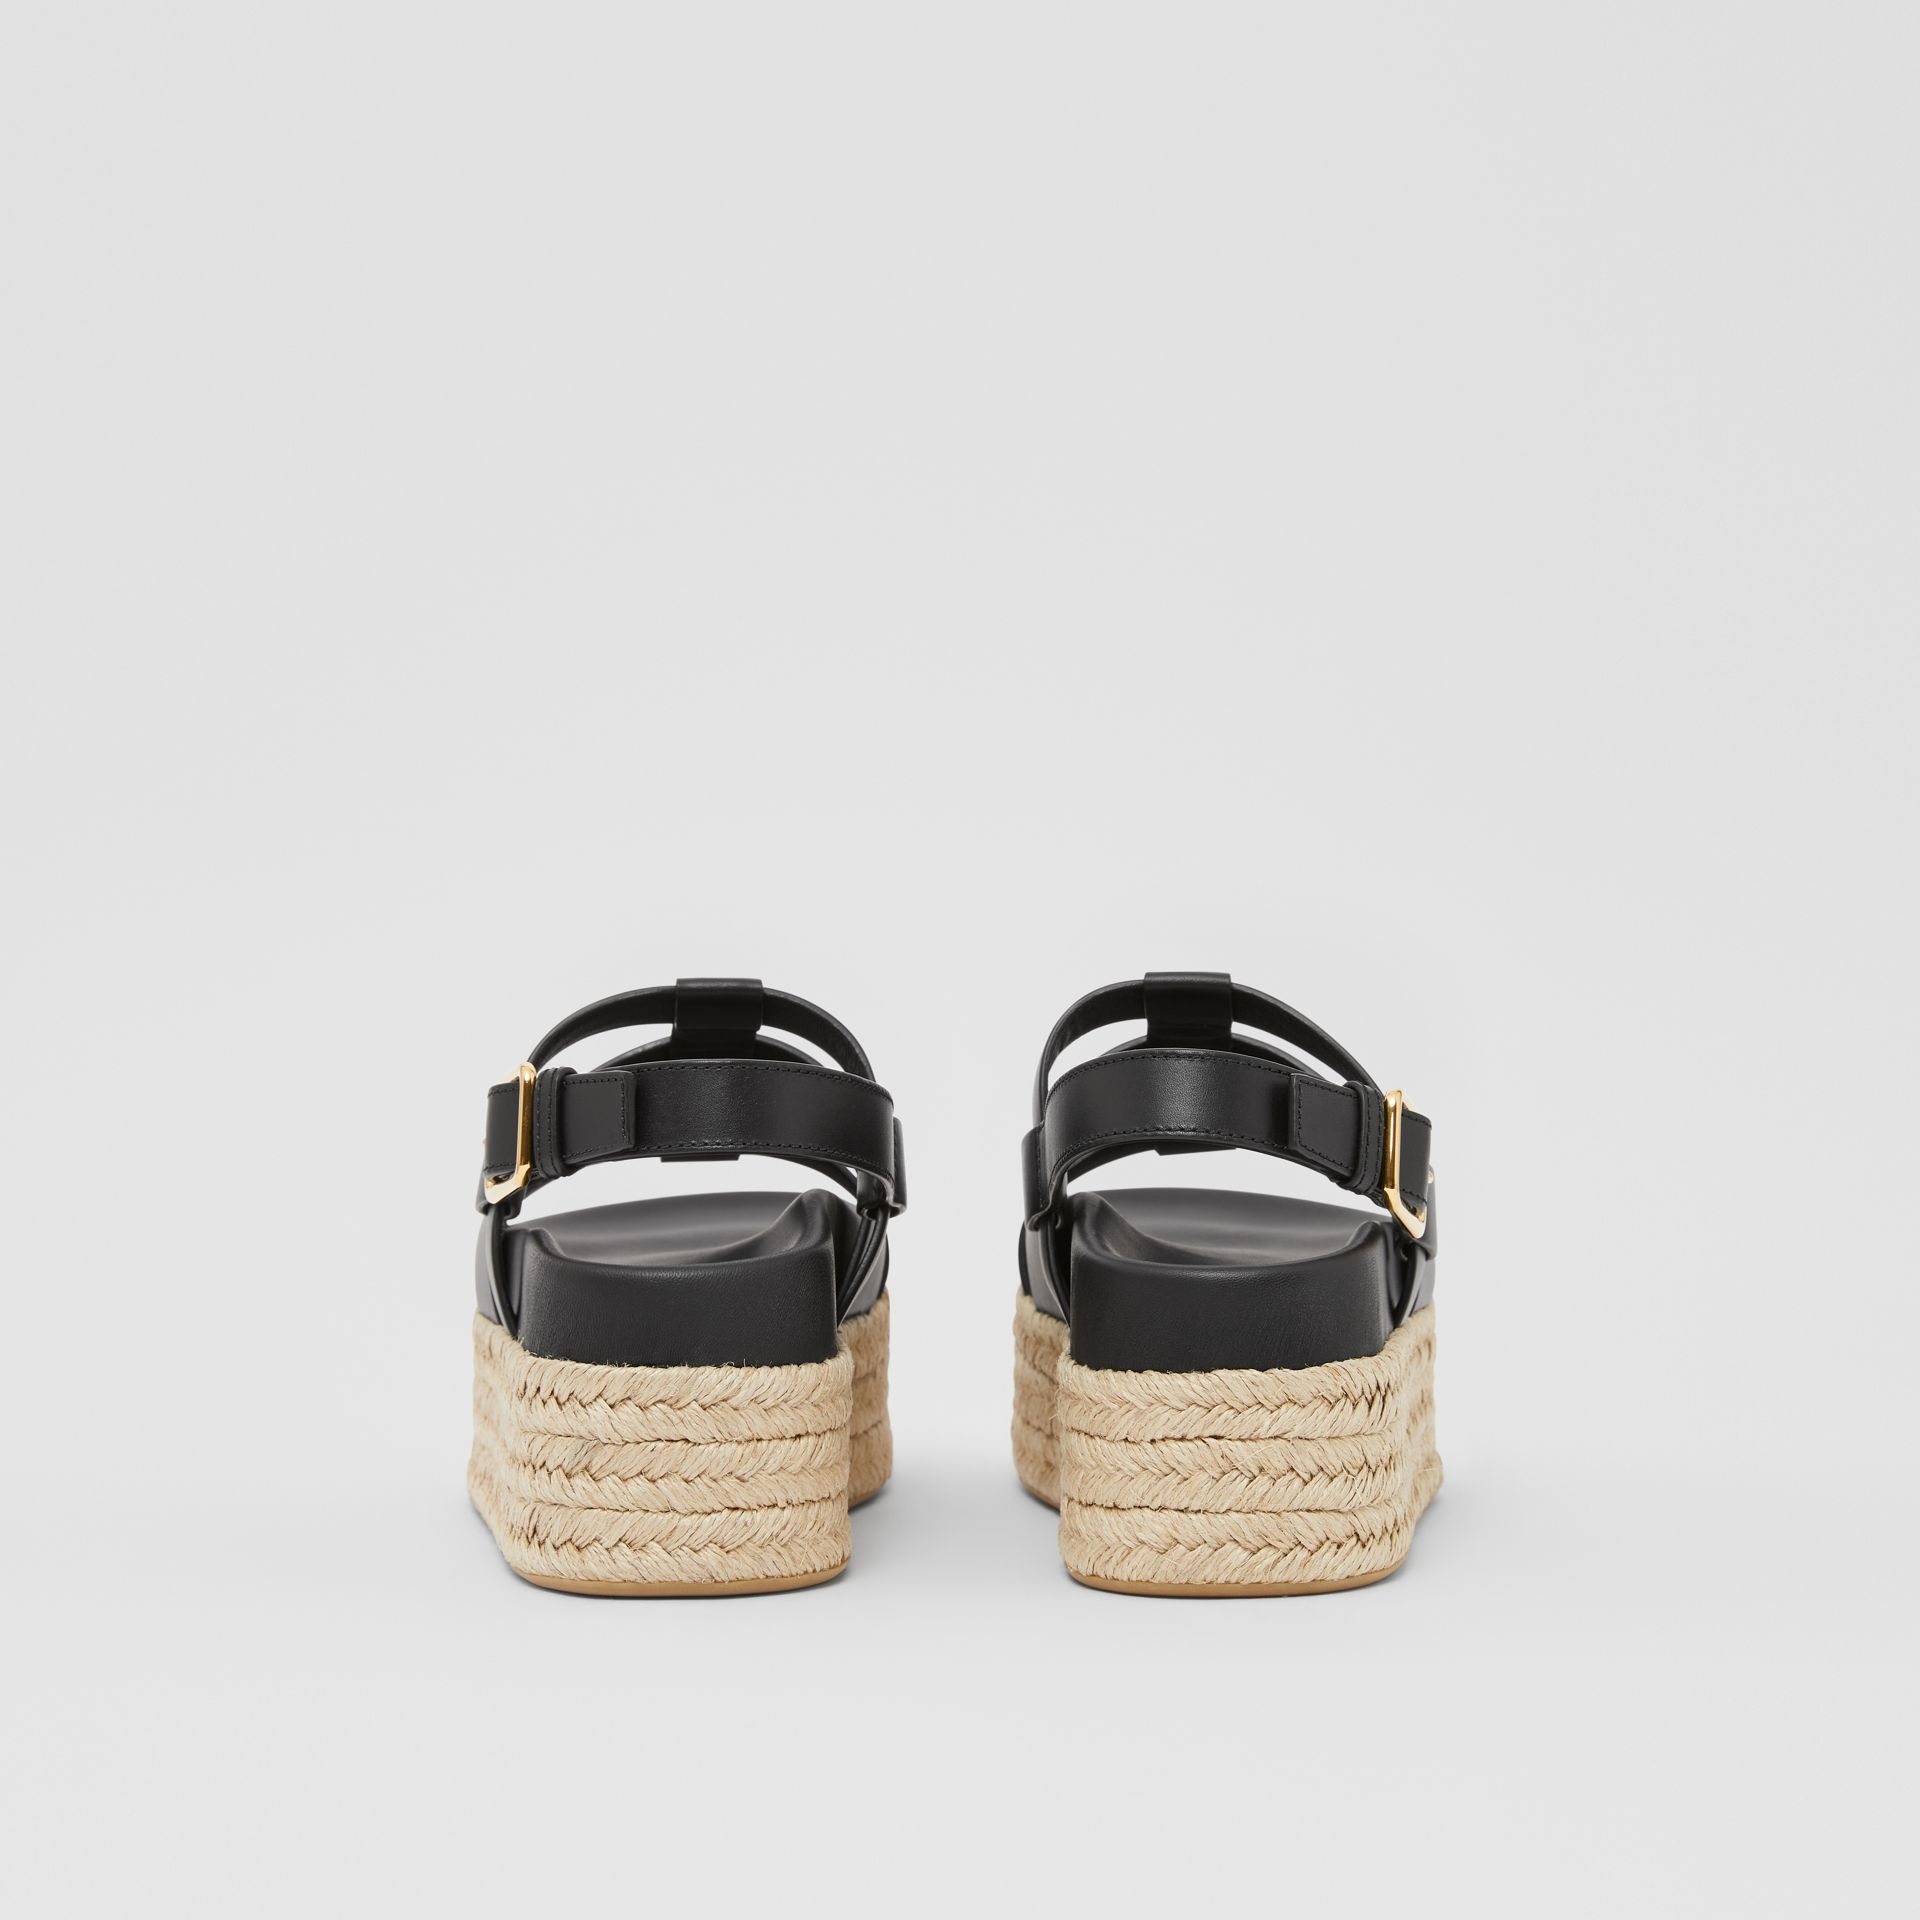 Logo Embossed Leather and Jute Sandals in Black - Women | Burberry - gallery image 3